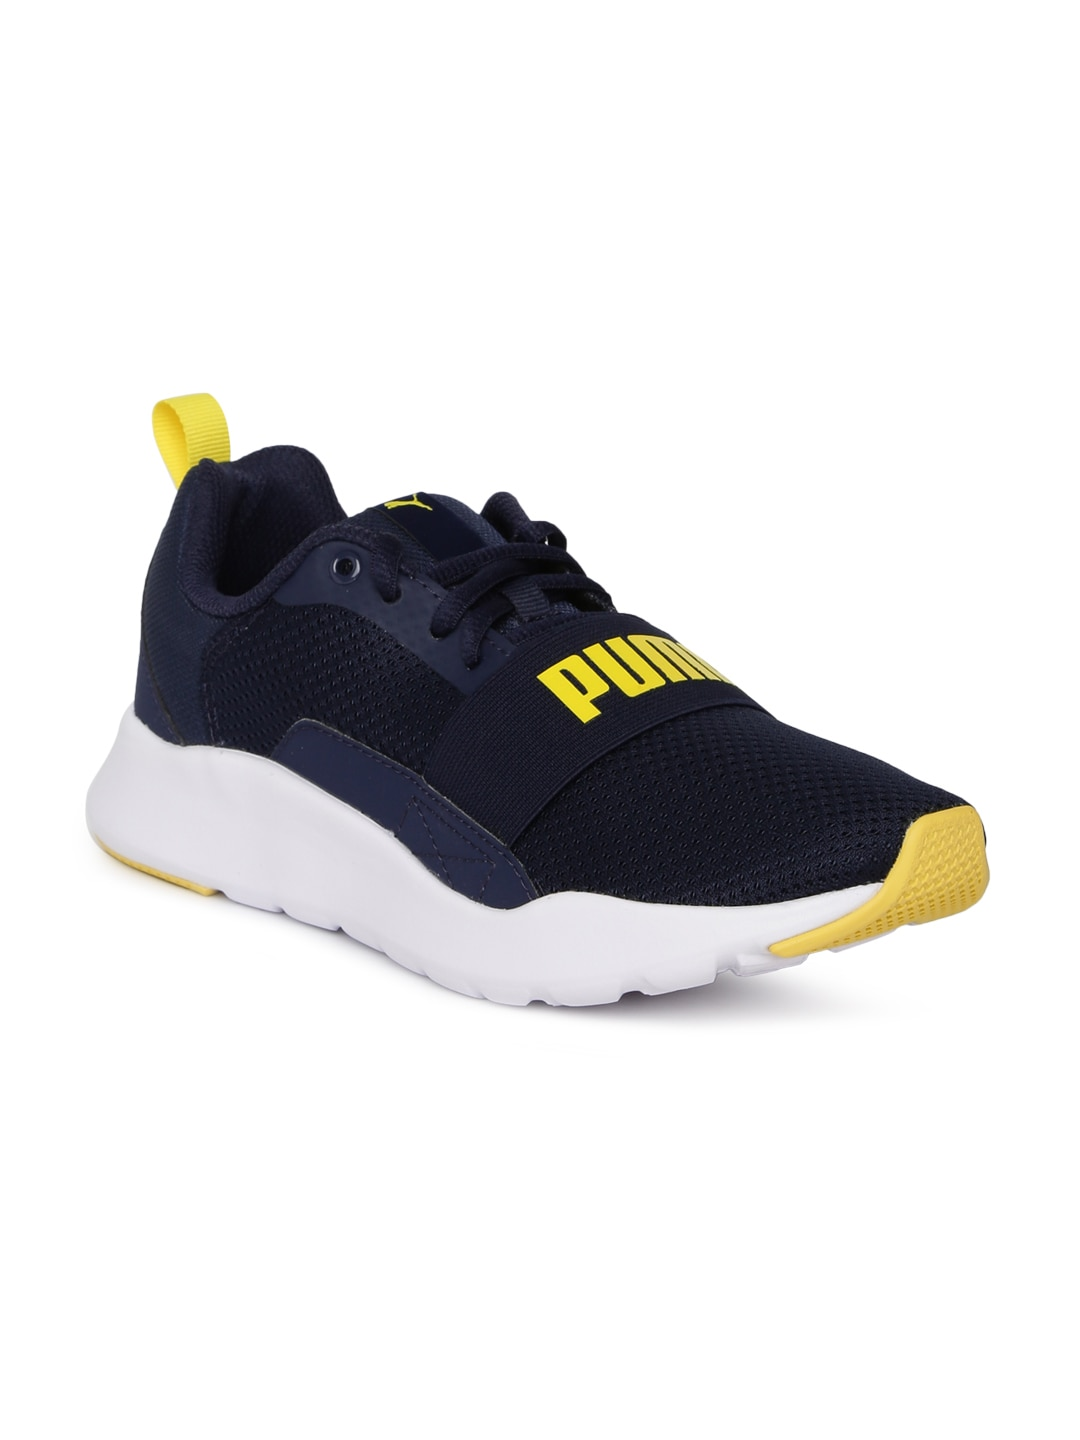 b6b85dfebffb Boys Sports Shoes - Buy Sports Shoes For Kids Online in India